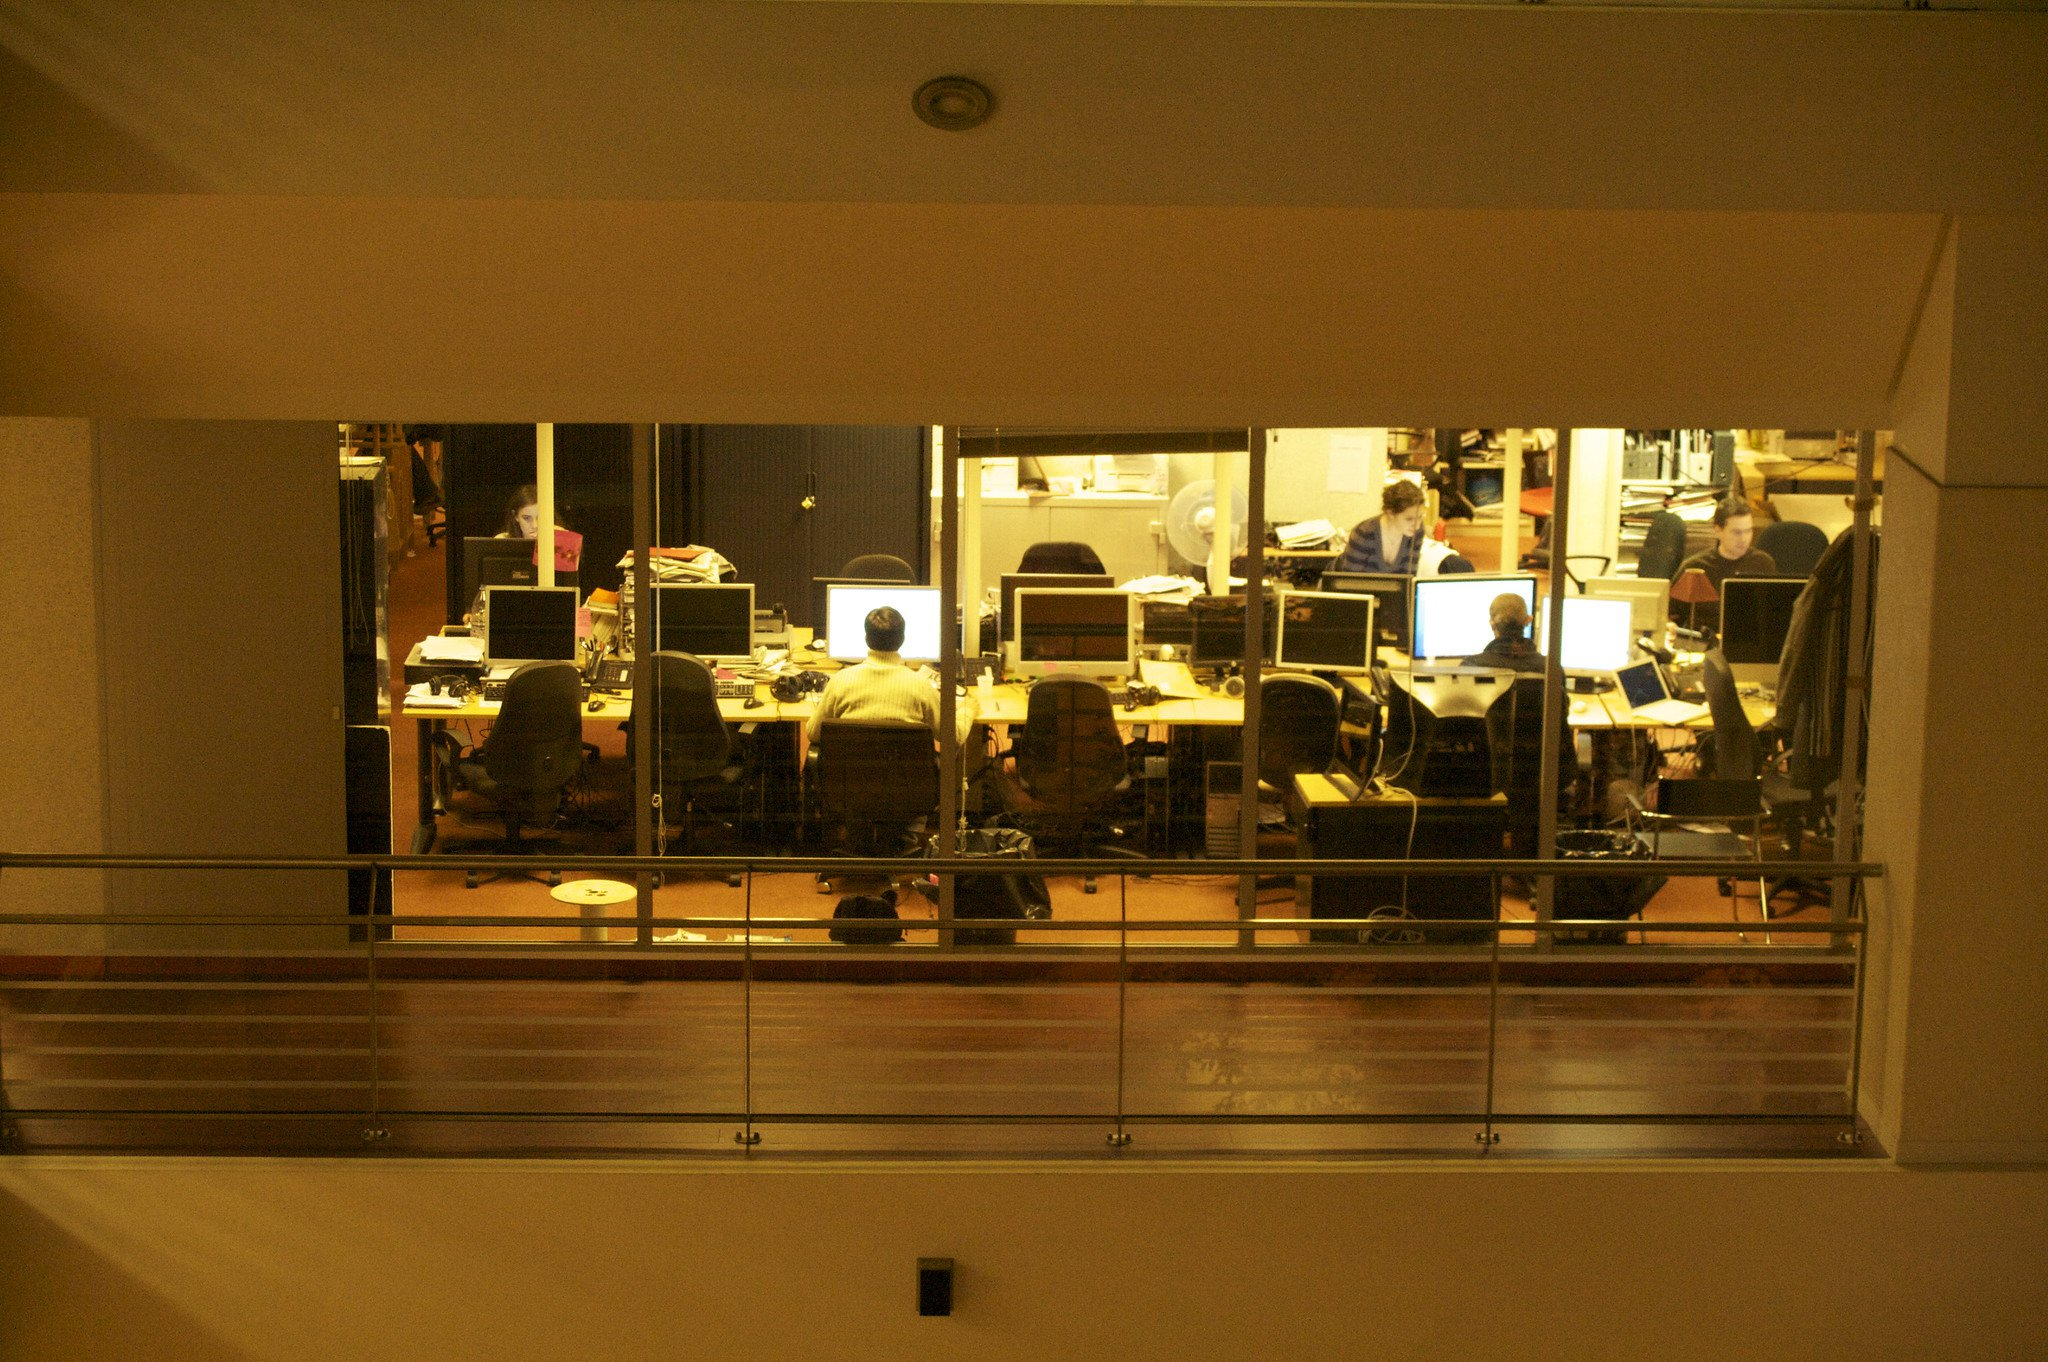 A photo peering into a window of the French newsroom, Le Point, where reporters are working at their desks.